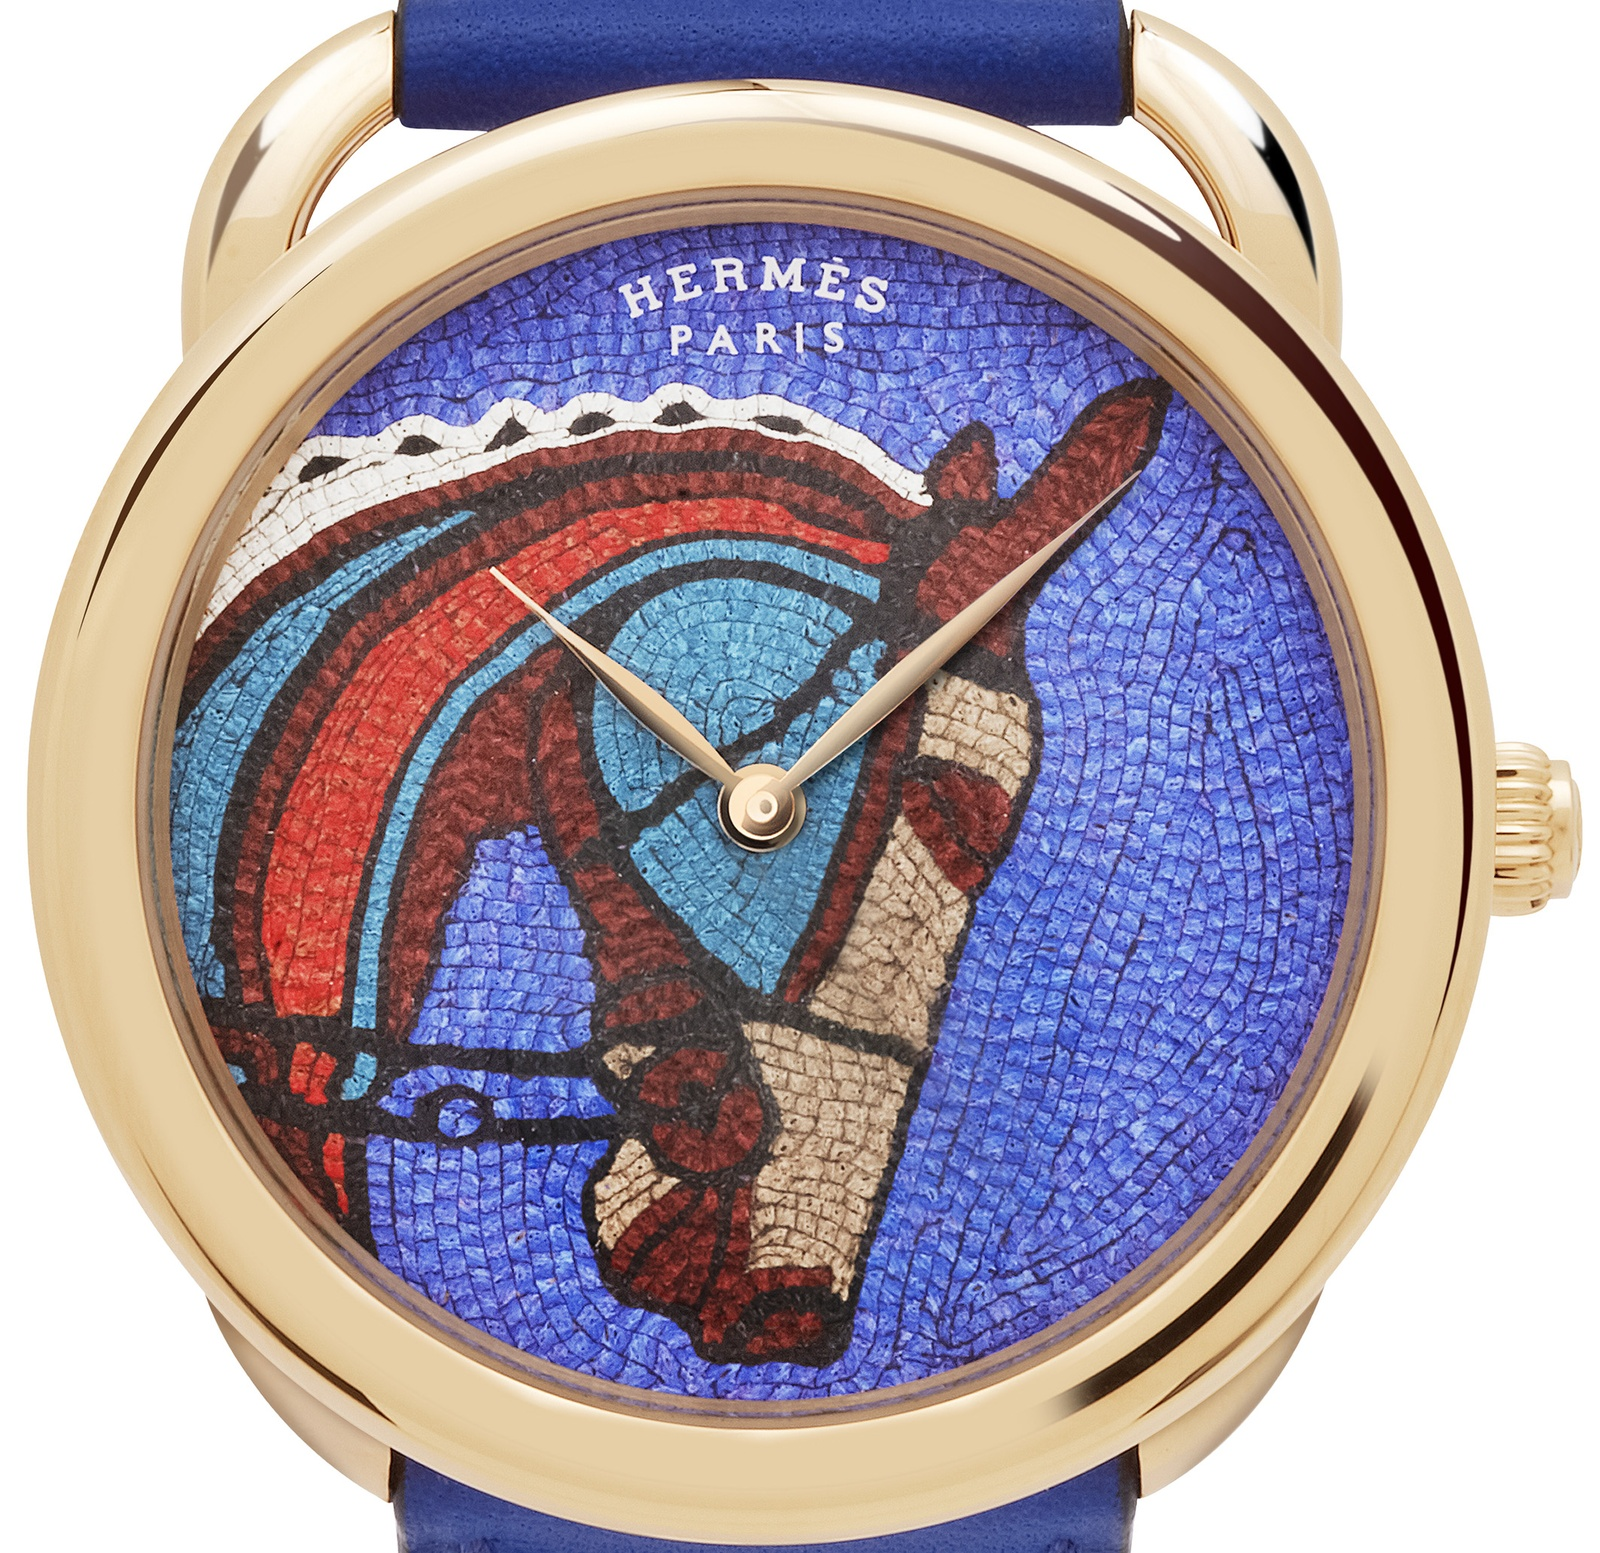 Hermes Arceau Robe du Soir dial close up